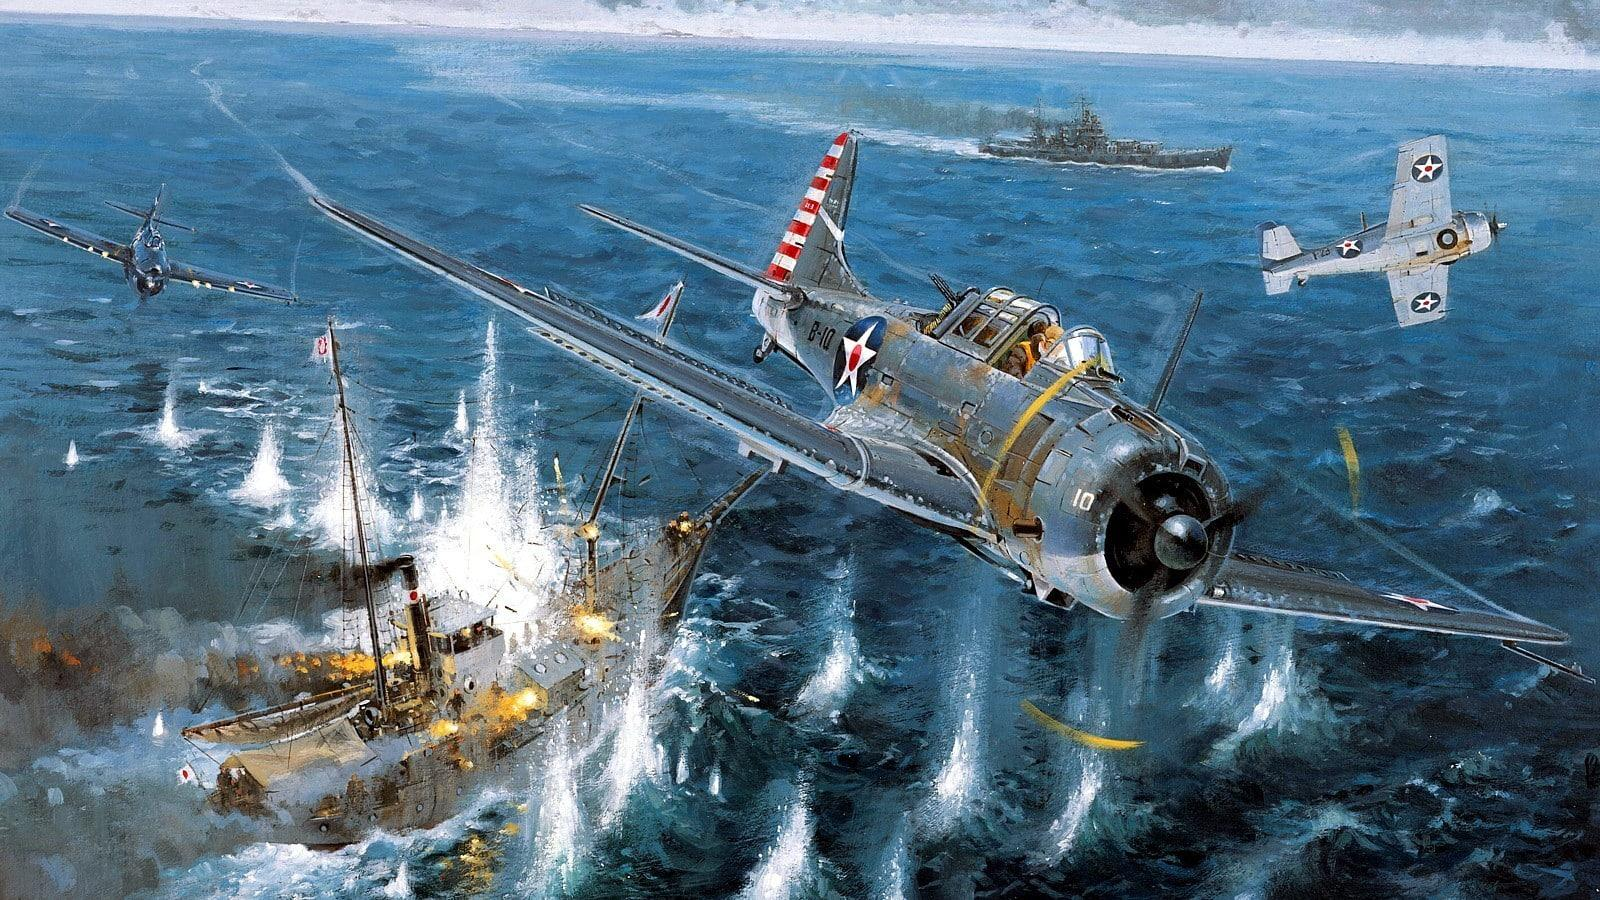 Douglas SBD Dauntless Wallpapers - Wallpaper Cave